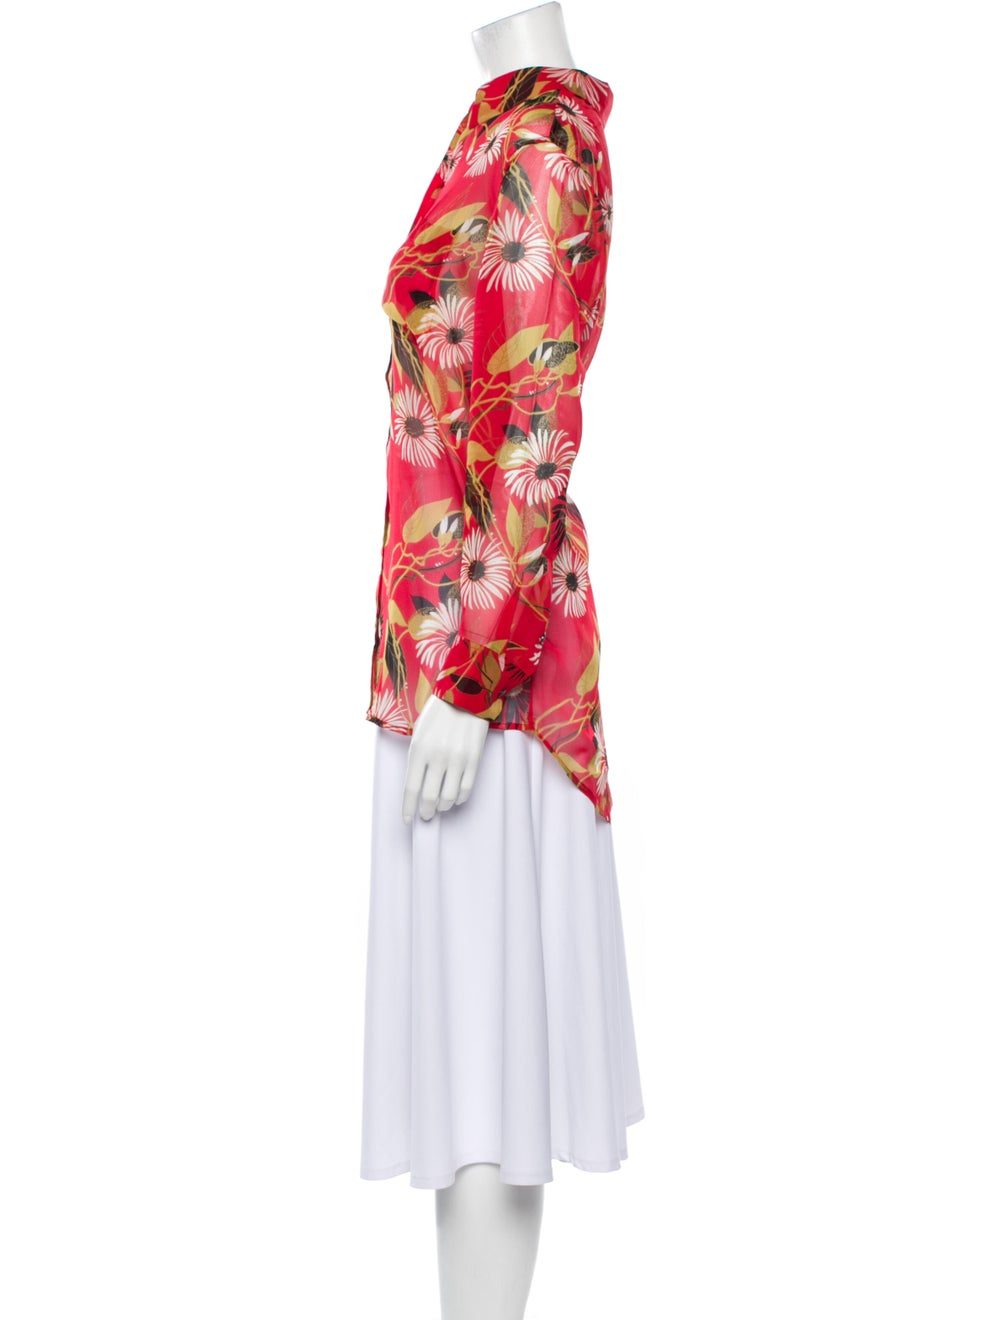 Equipment Silk Floral Print Button-Up Top Red - image 2